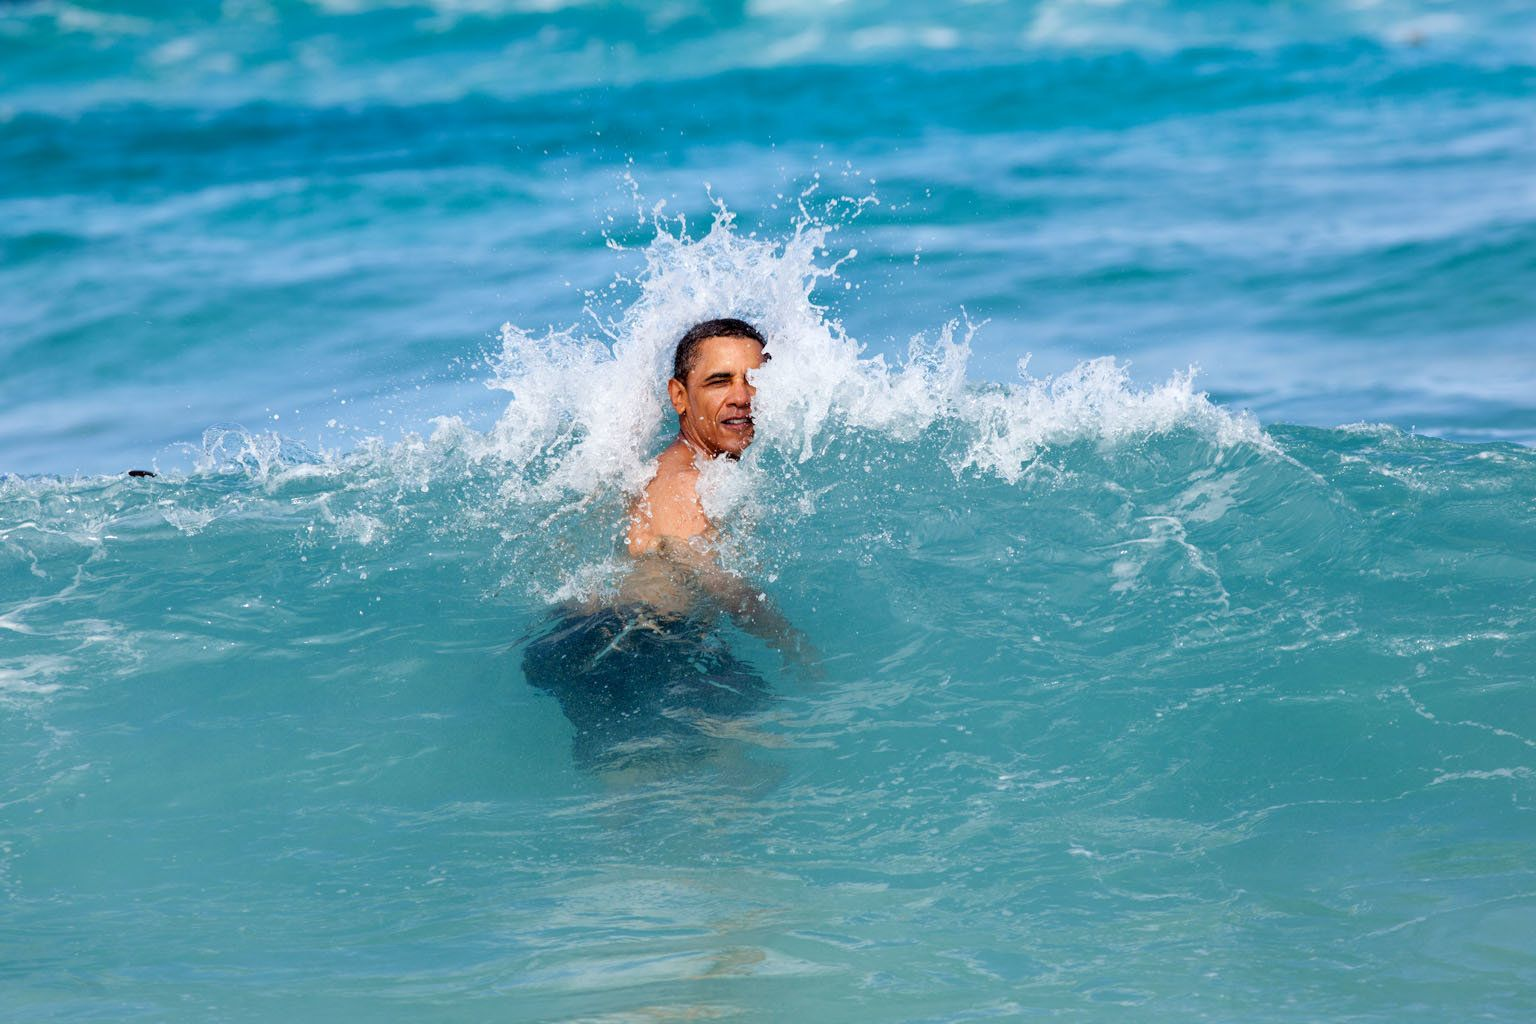 KANEOHE BAY, HI - JANUARY 1:  In this handout from the White House, U.S. President Barack Obama jumps into the ocean at Pyramid Rock Beach January 1, 2013 in Kaneohe Bay, Hawaii. Obama is currently on vacation in his native state.  (Photo by Pete Souza/The White House via Getty Images)